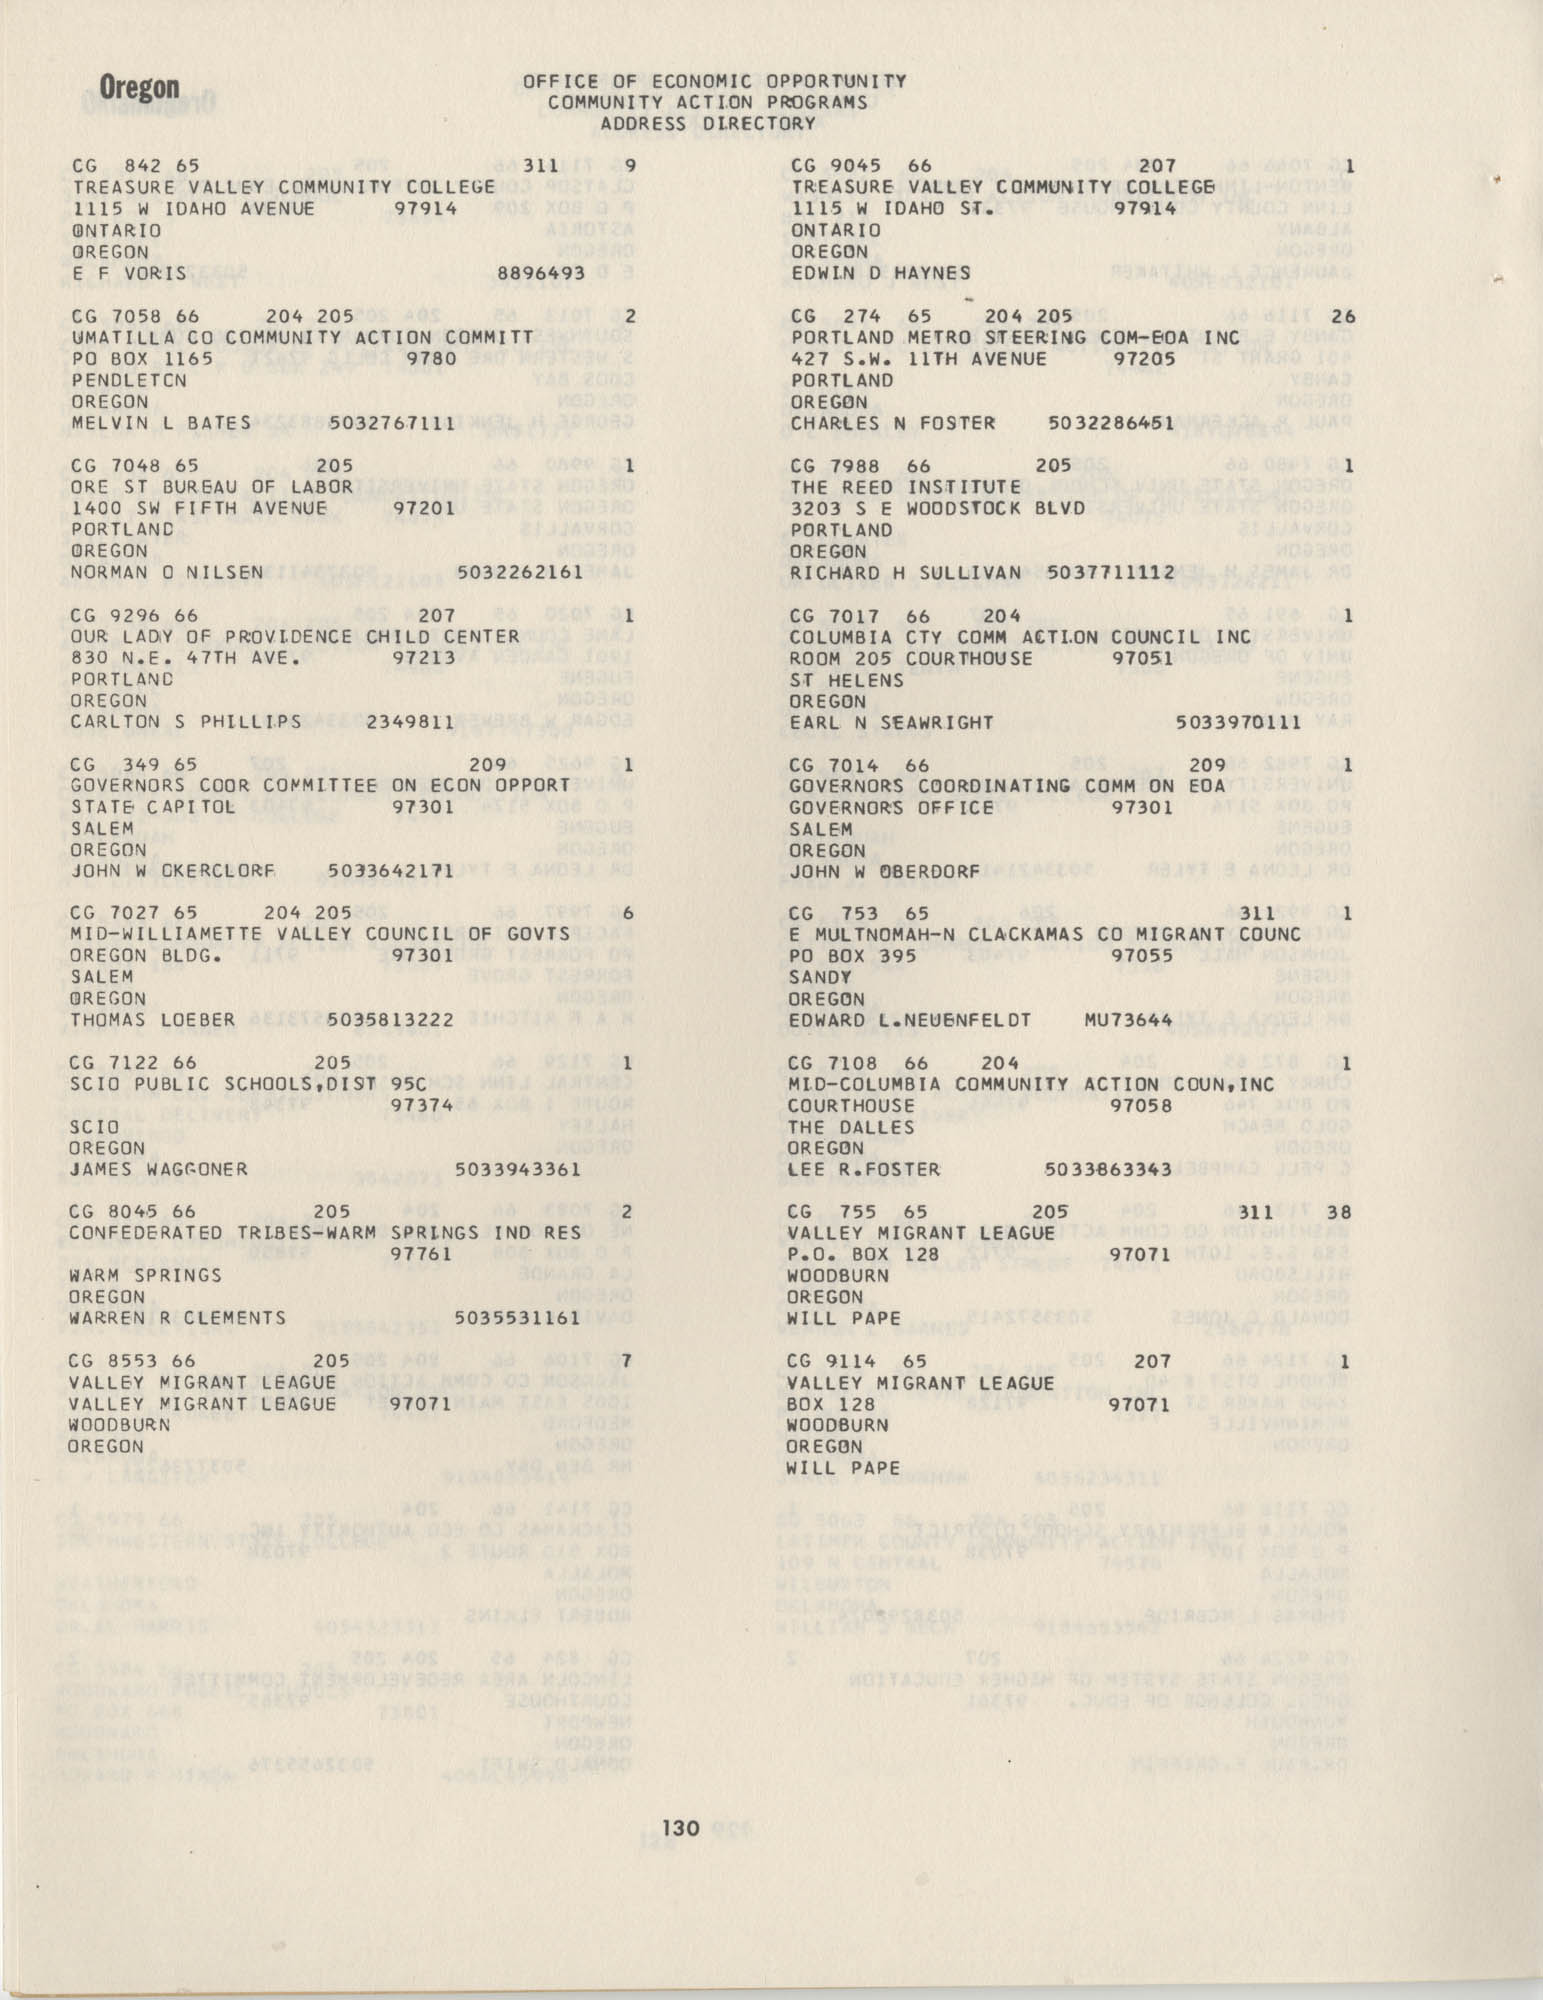 Community Action Programs Directory, June 15, 1966, Page 130